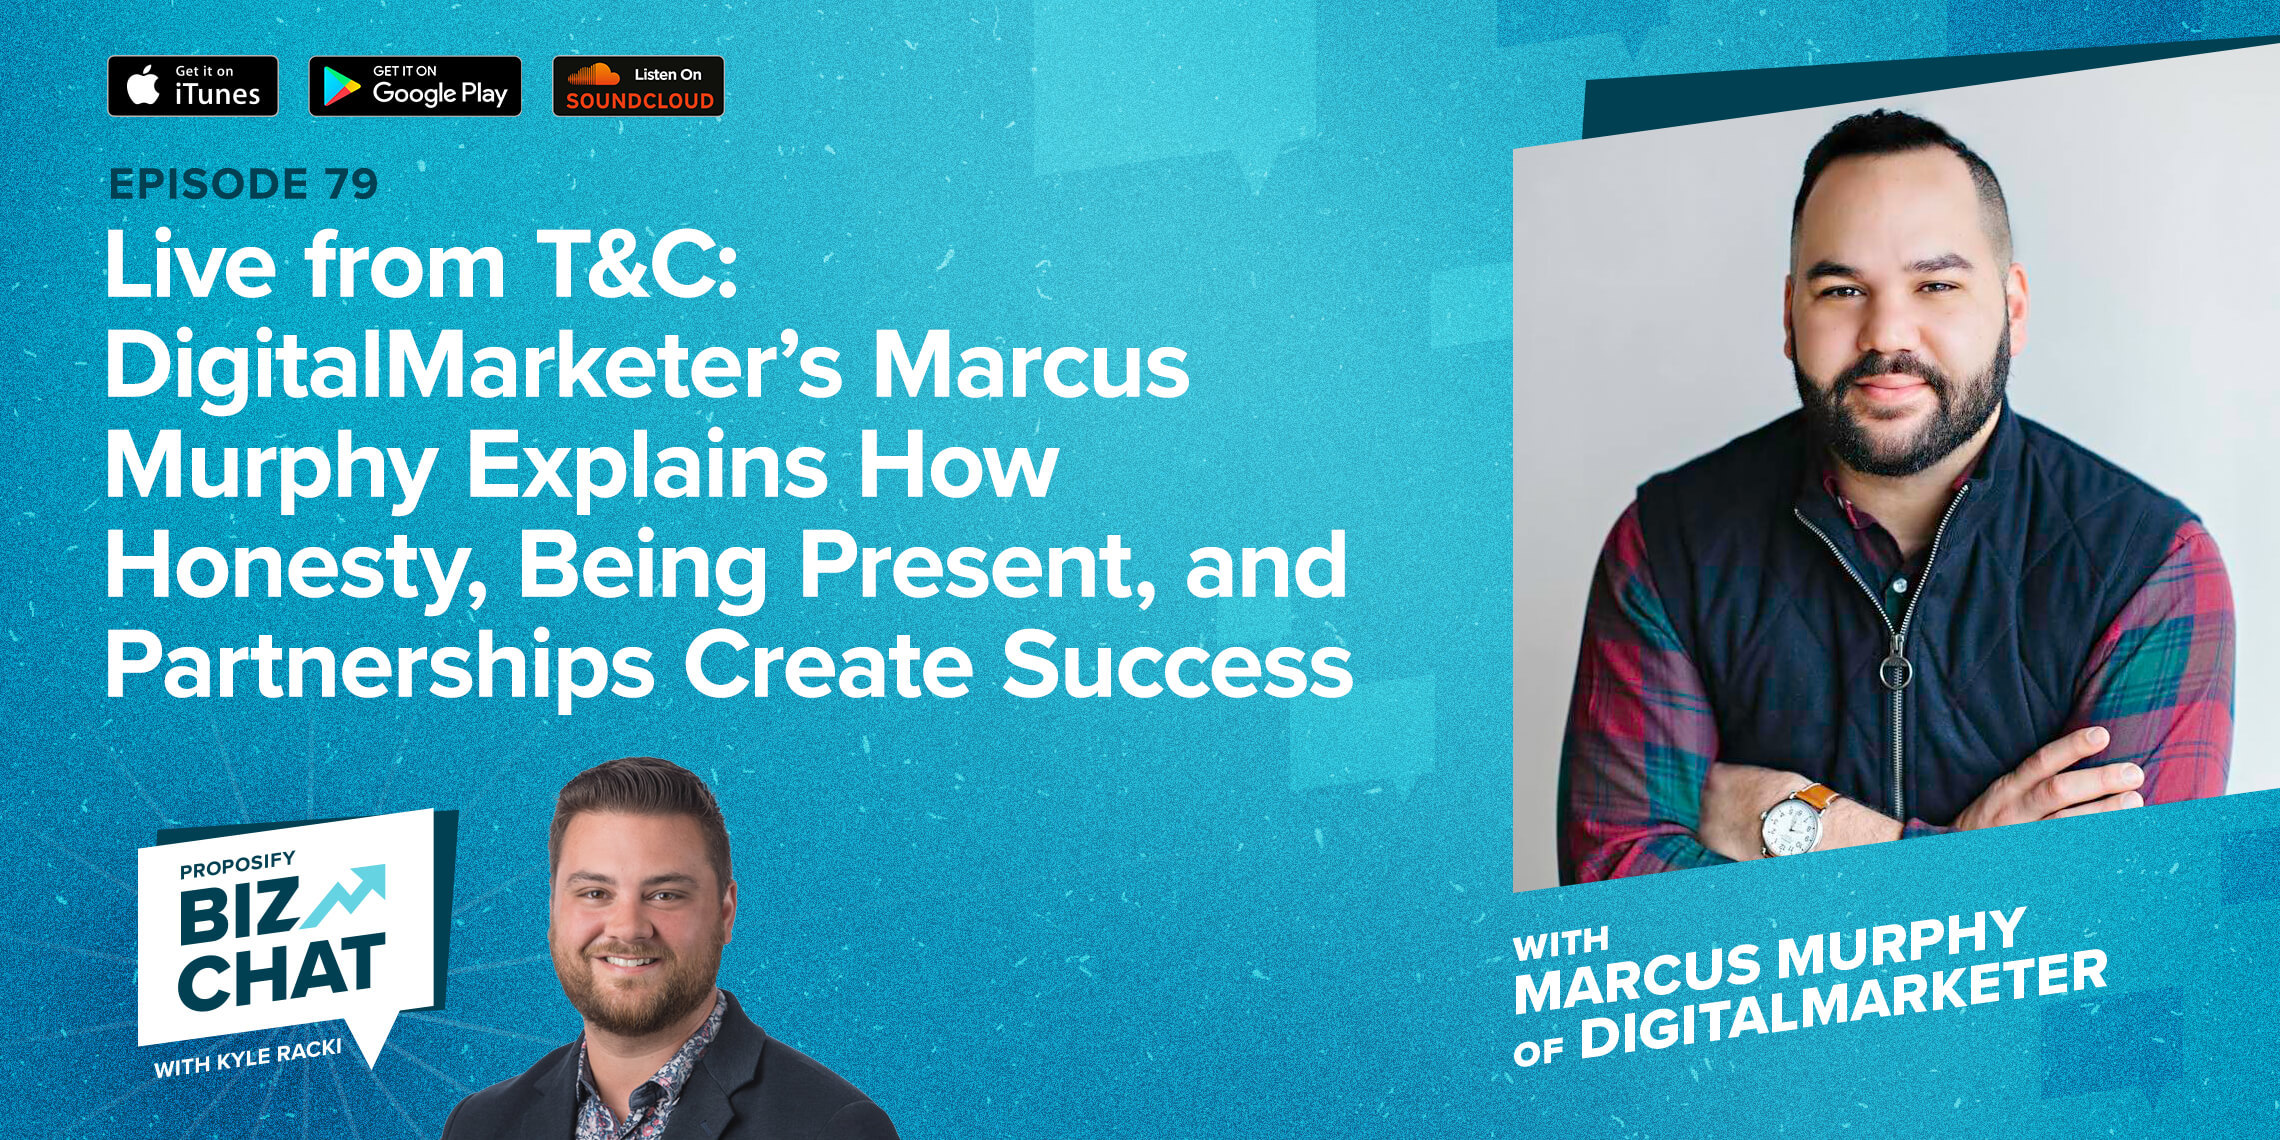 Live from T&C: DigitalMarketer's Marcus Murphy Explains How Honesty, Being Present, and Partnerships Create Success